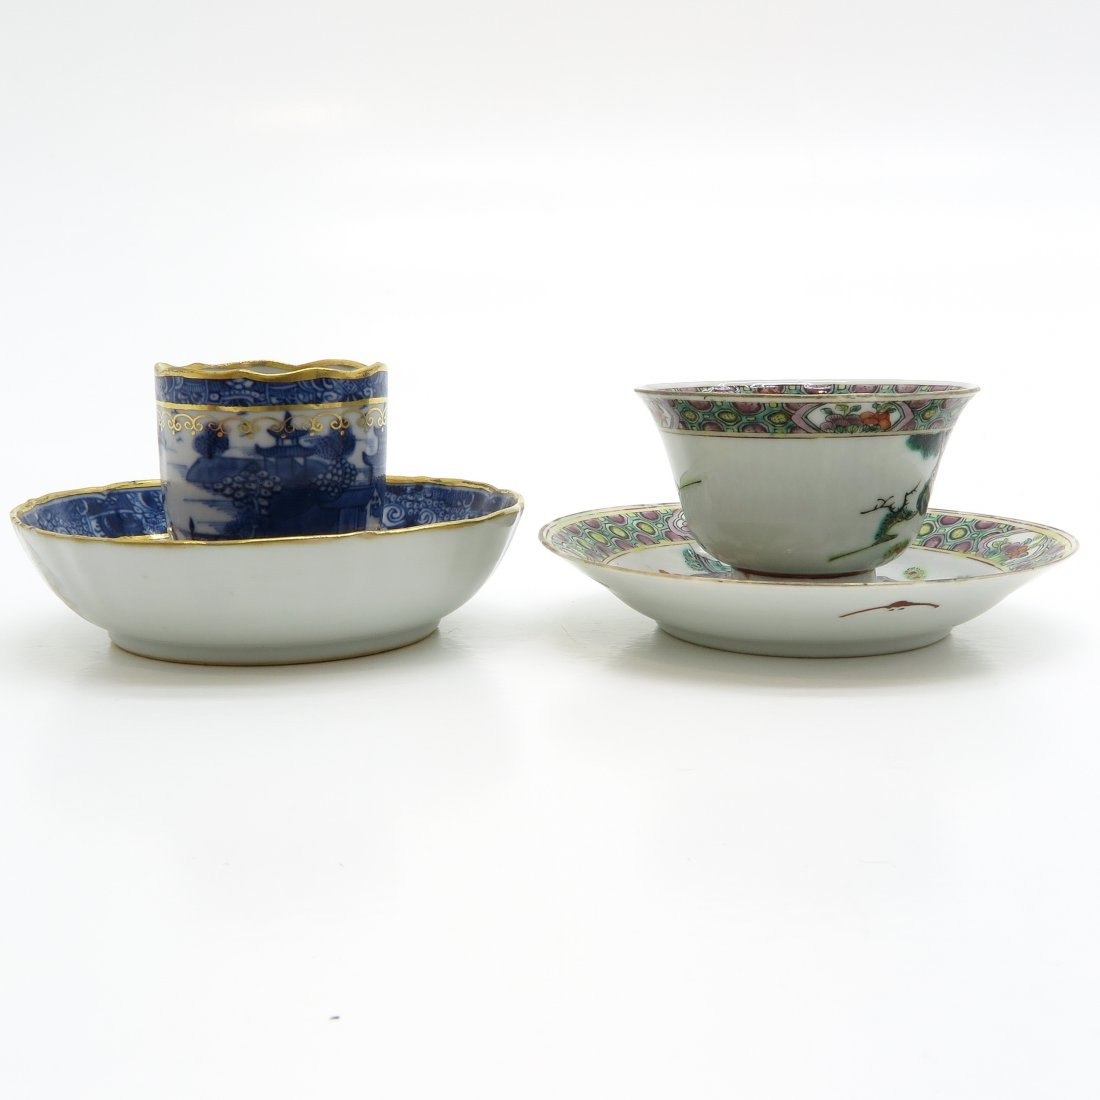 Lot of 18th Century China Porcelain Cups and Saucers - 4